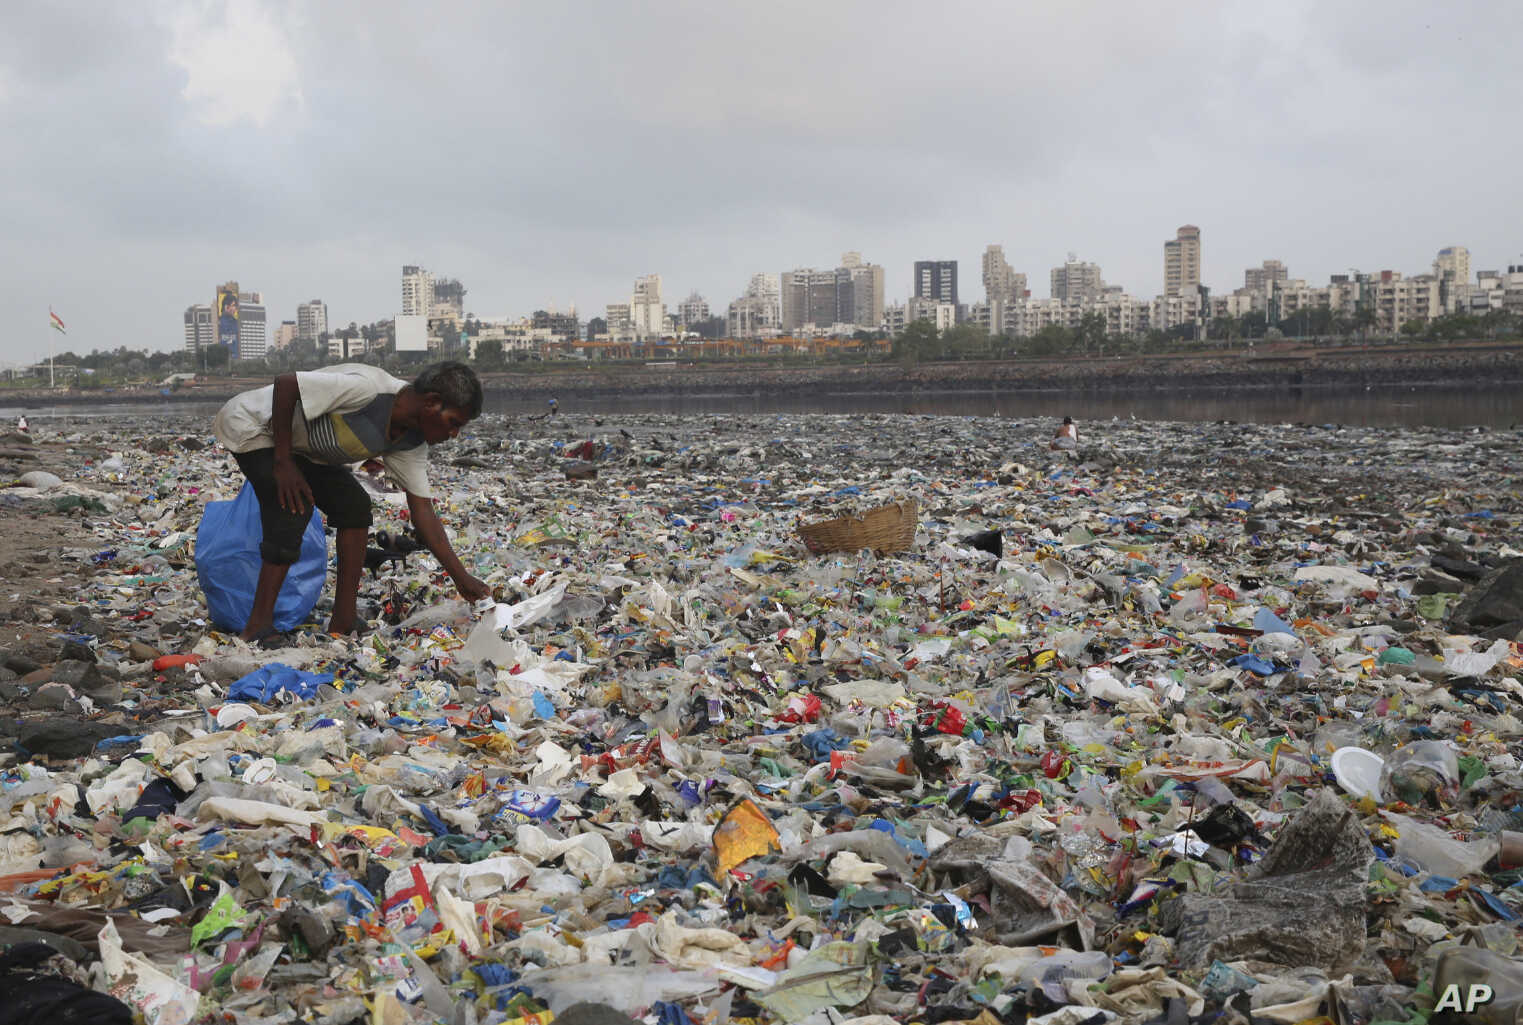 Plastics Contribute to Global Warming, Scientists Say